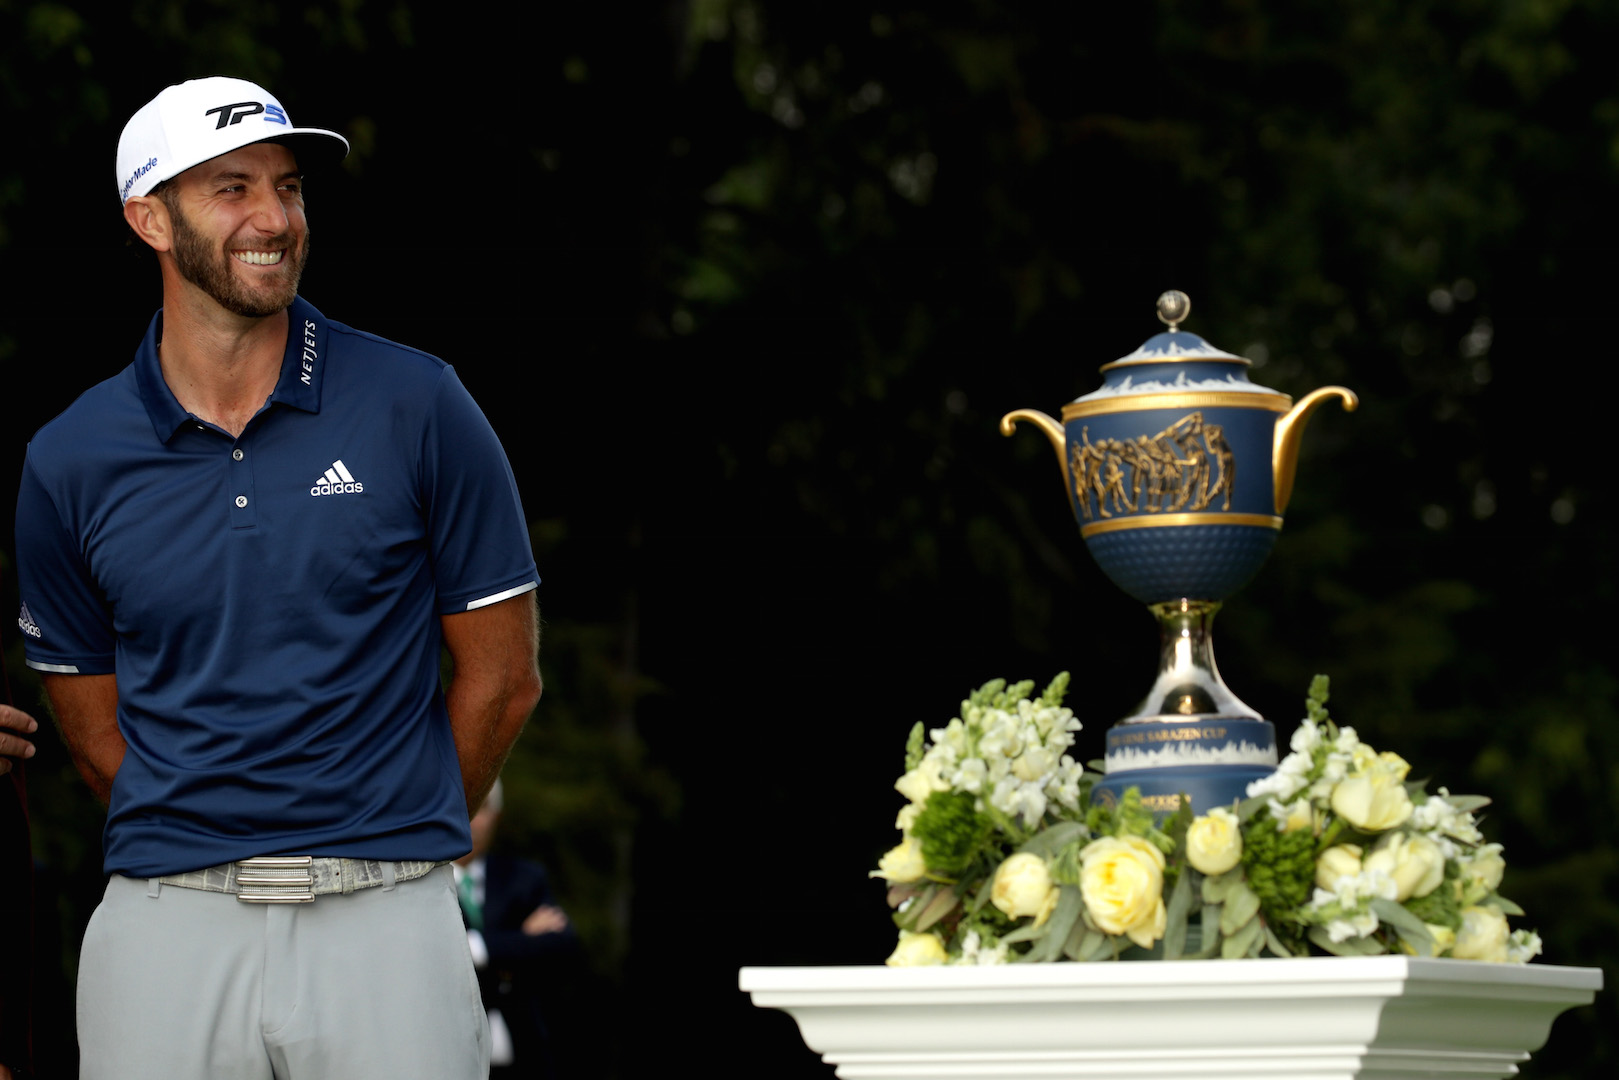 Dustin Johnson wins WGC in Mexico